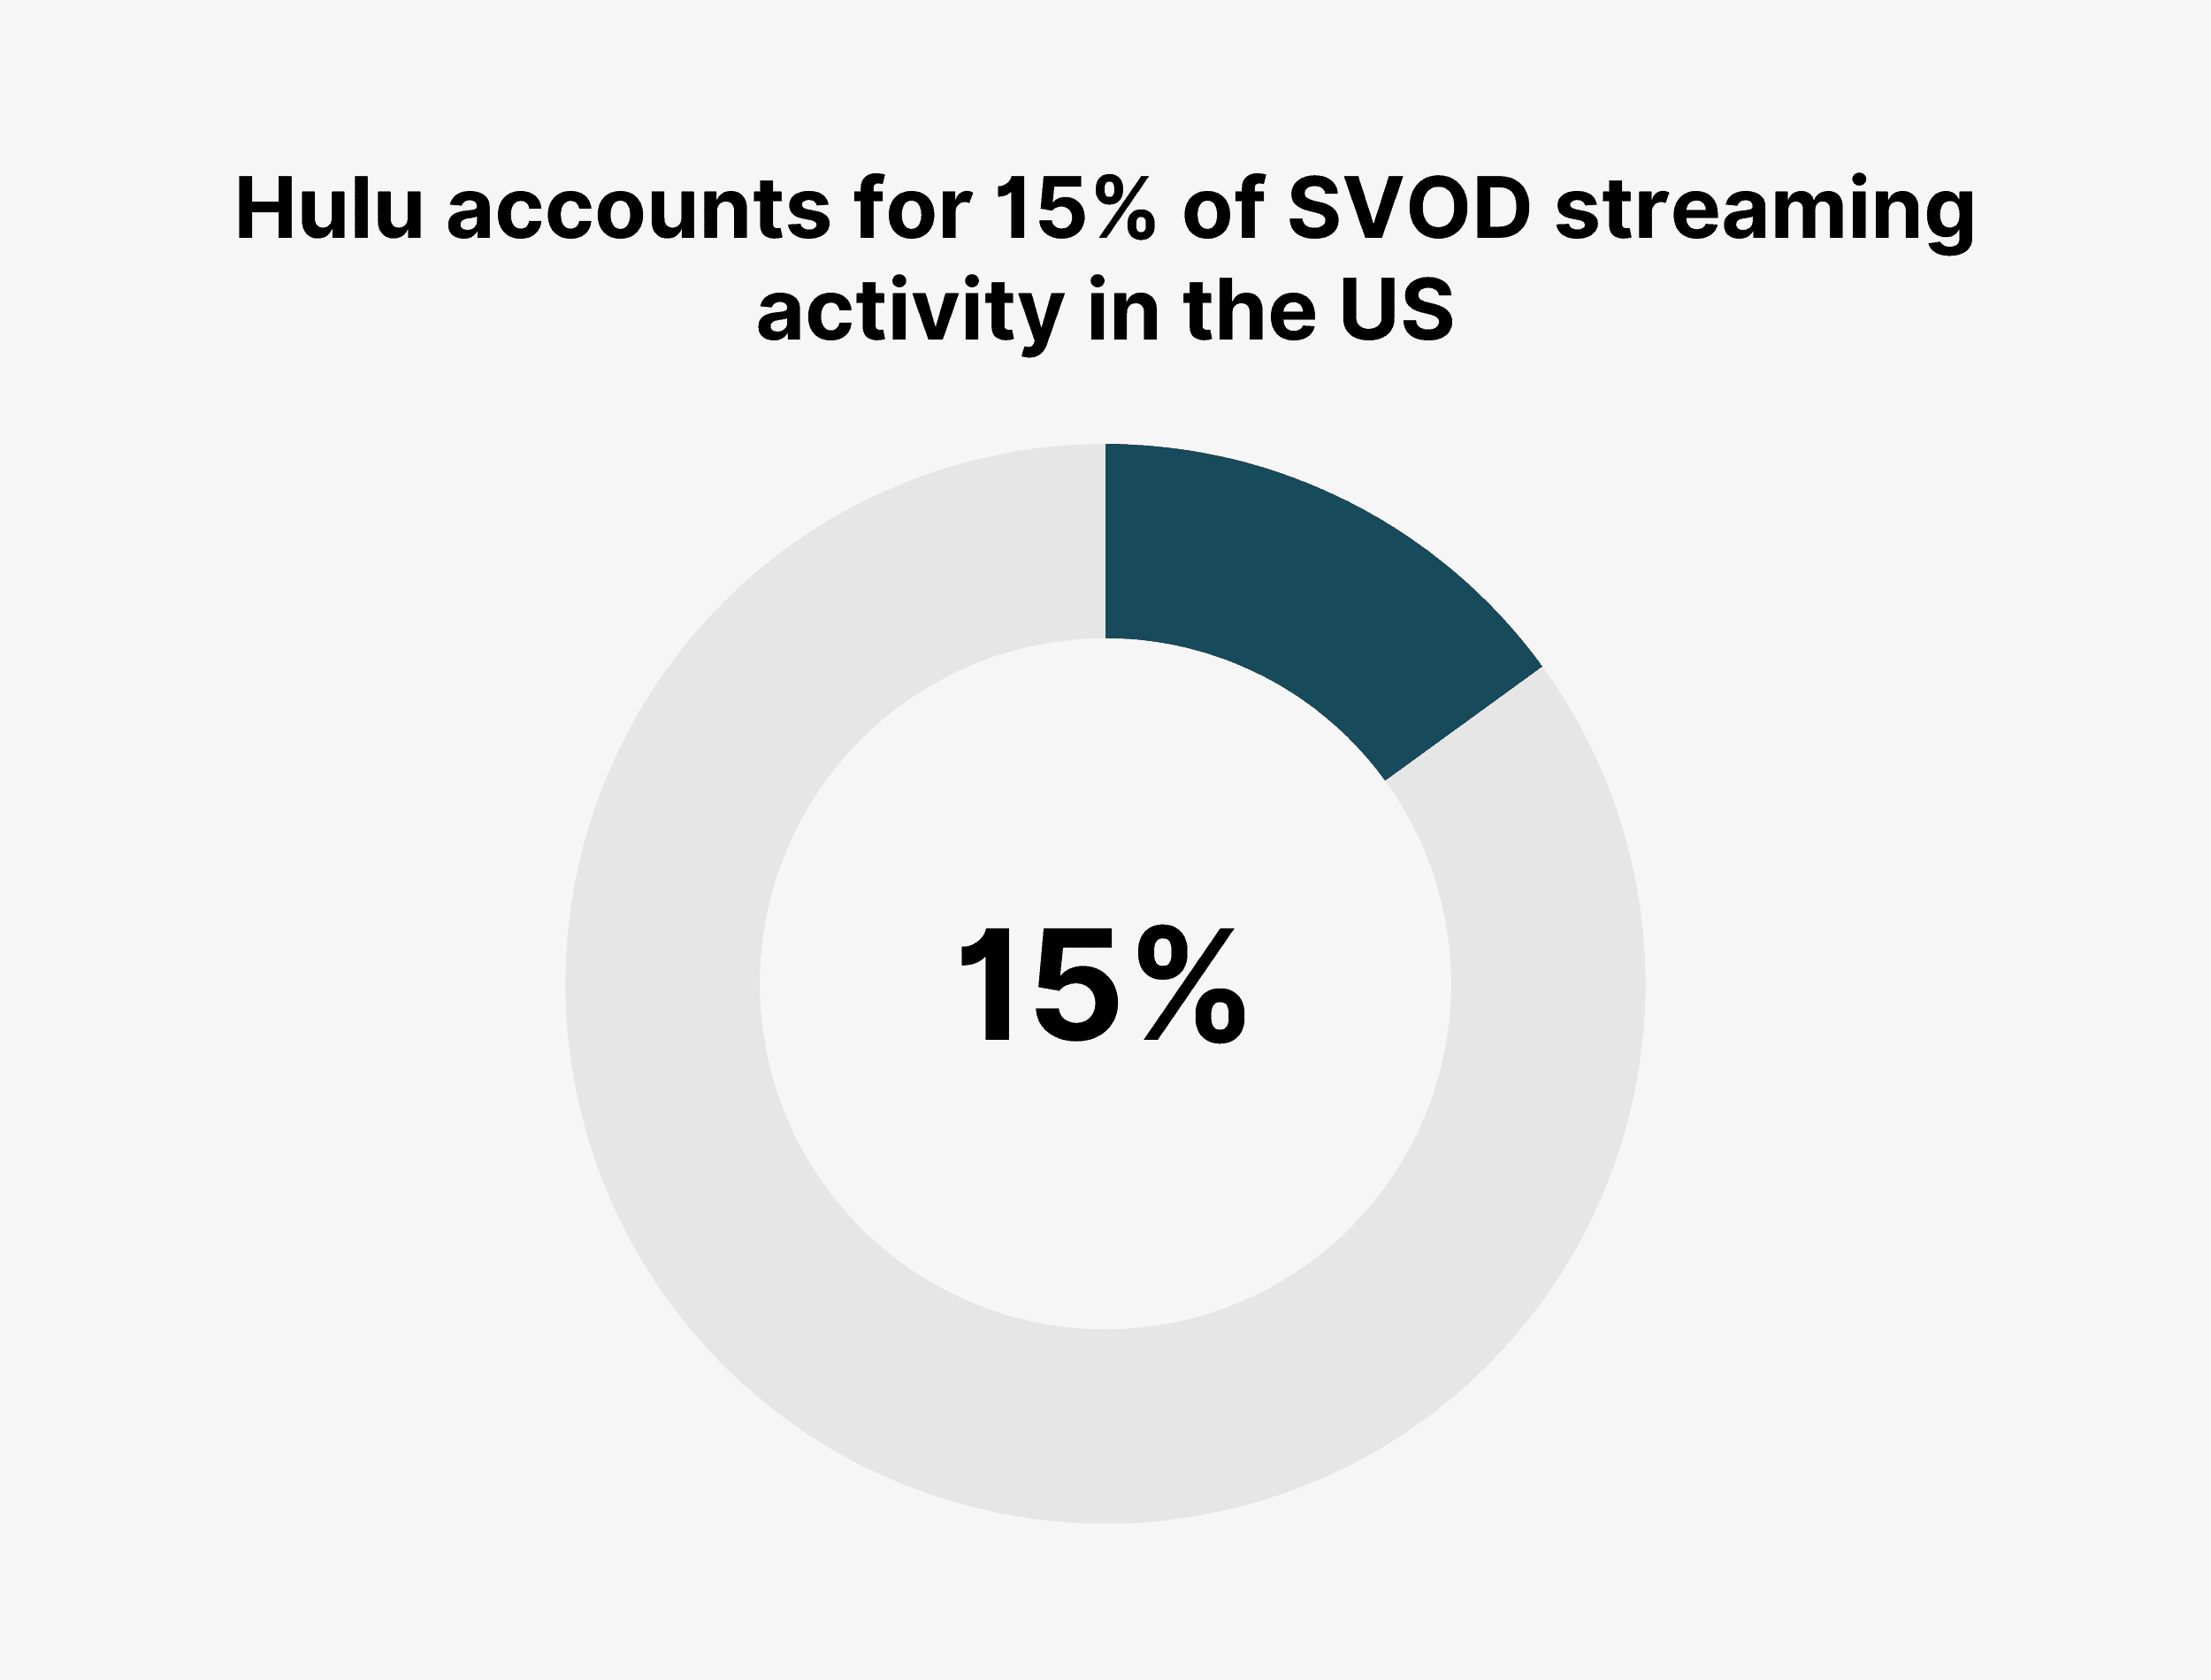 Hulu accounts for 15% of SVOD streaming activity in the US